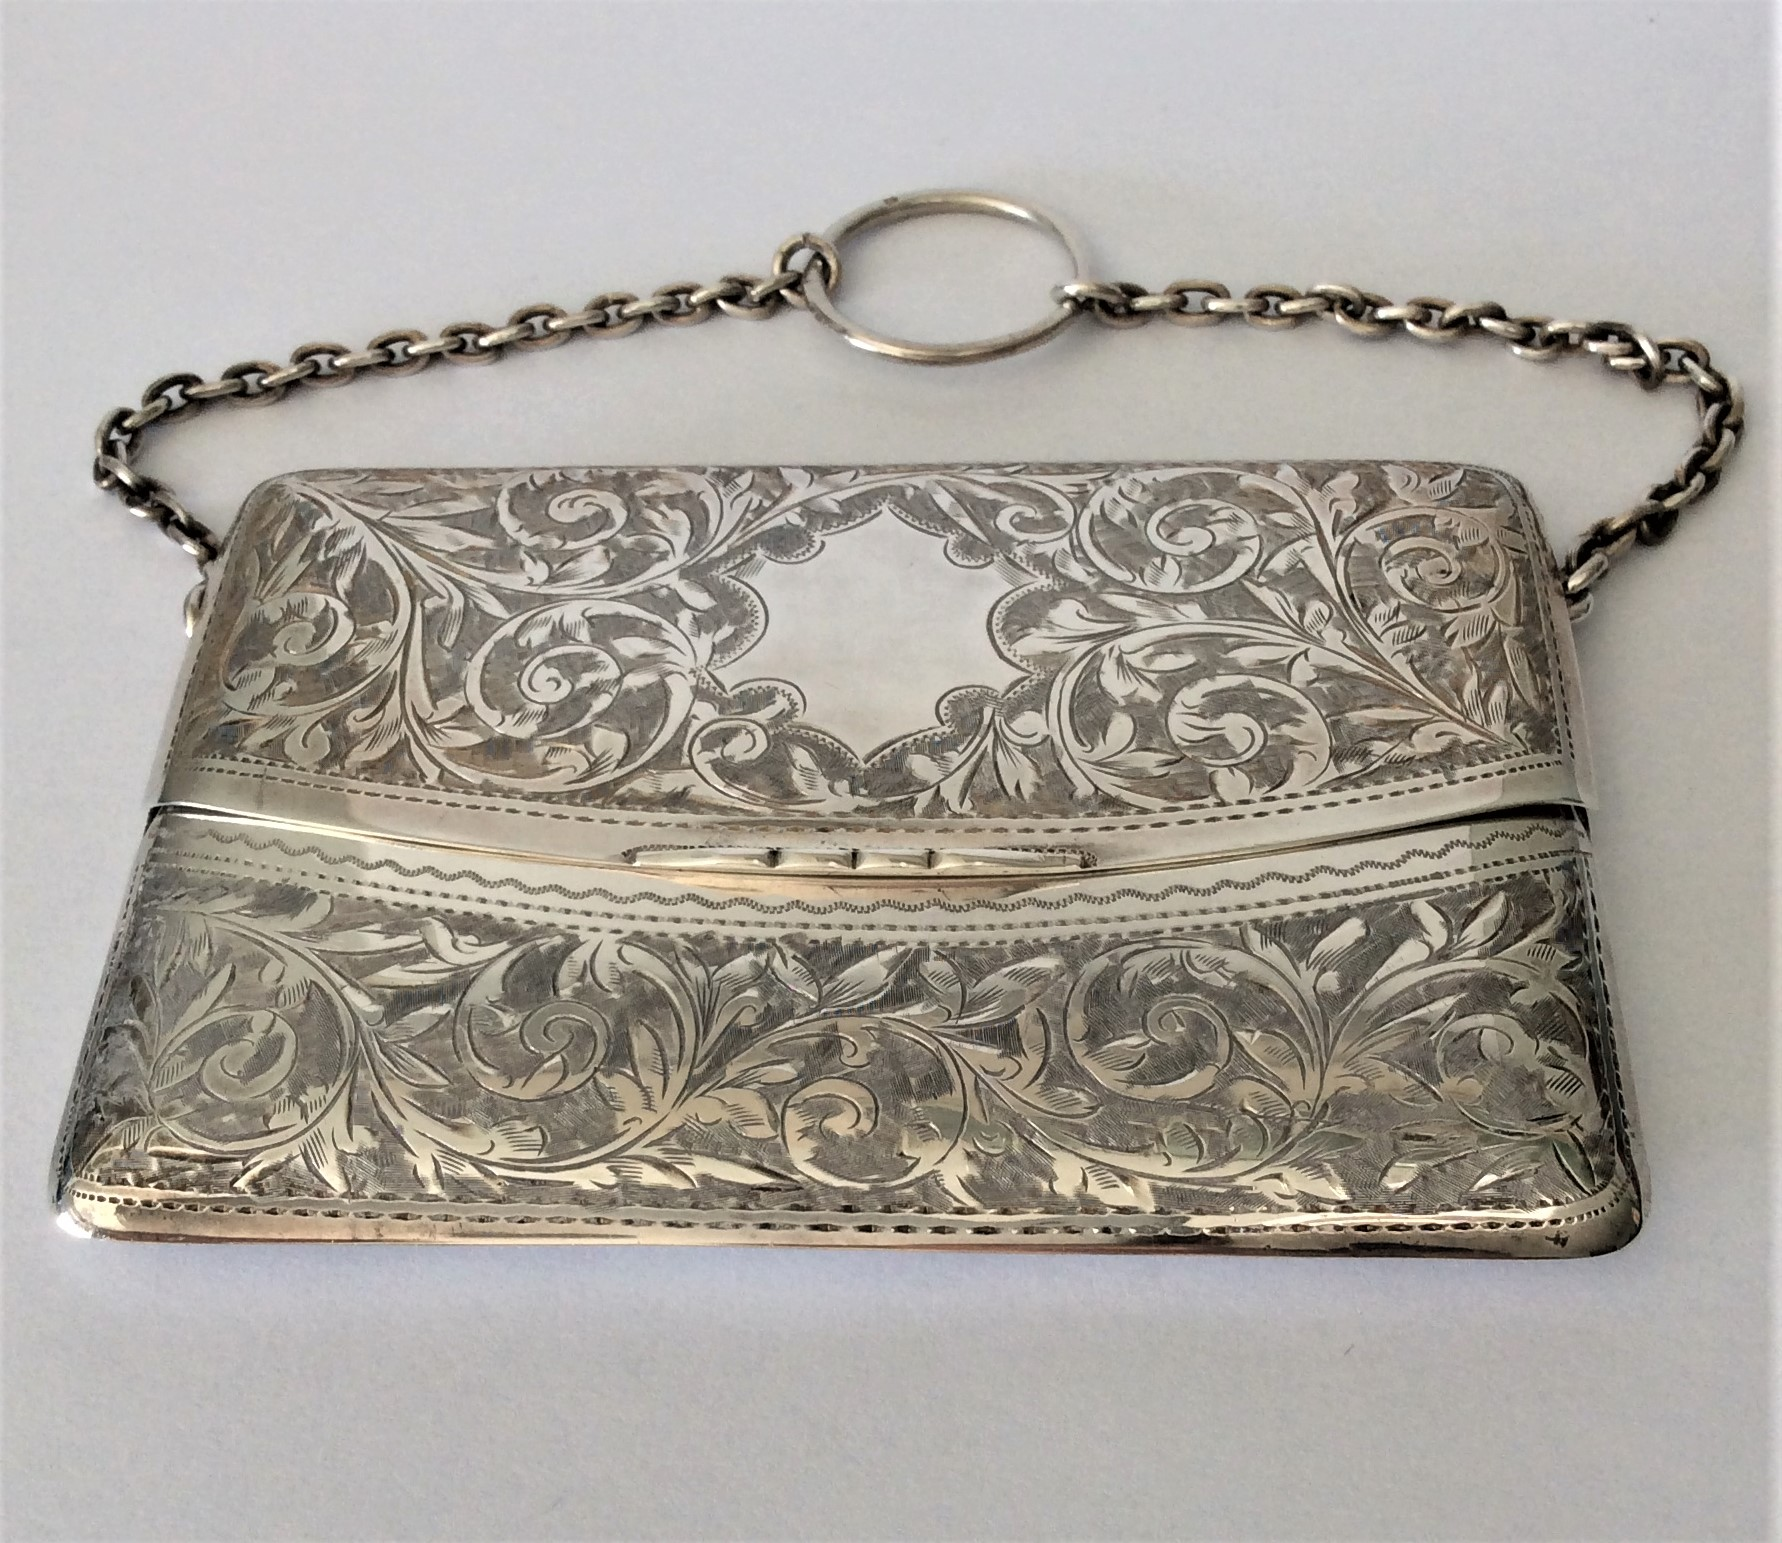 Antique Sterling Silver Dance/Card Purse Fully Hallmarked Birmingham 1905 by Silversmith William Henry Sparrow.      Fitted Vintage Box included   Purse Size 10cm x 7cm Weight 89g